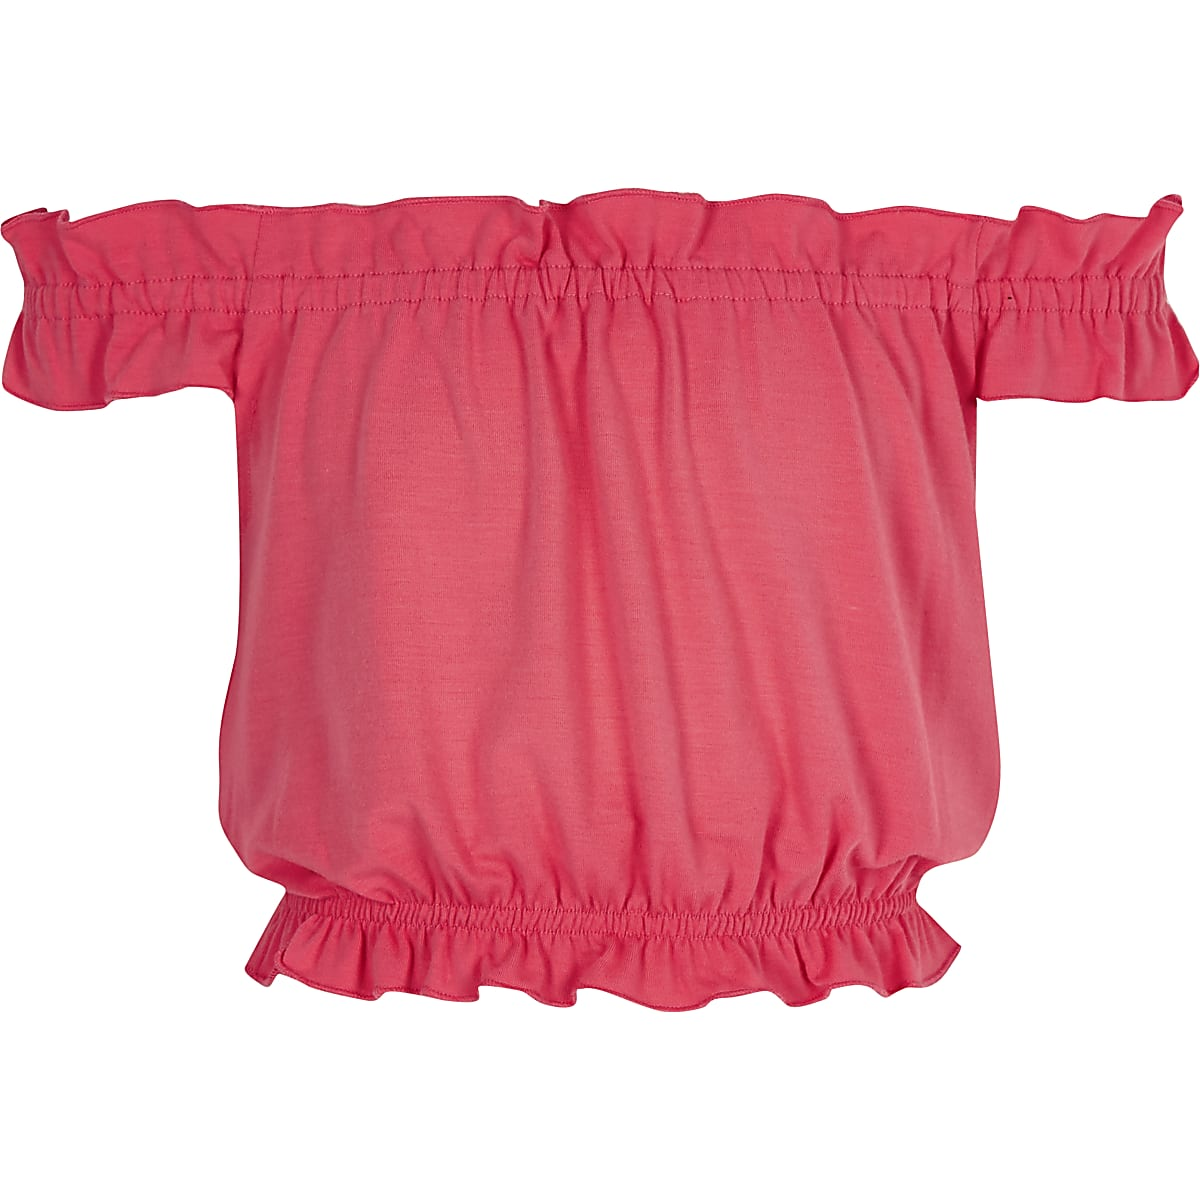 Girls coral ruffle bardot top